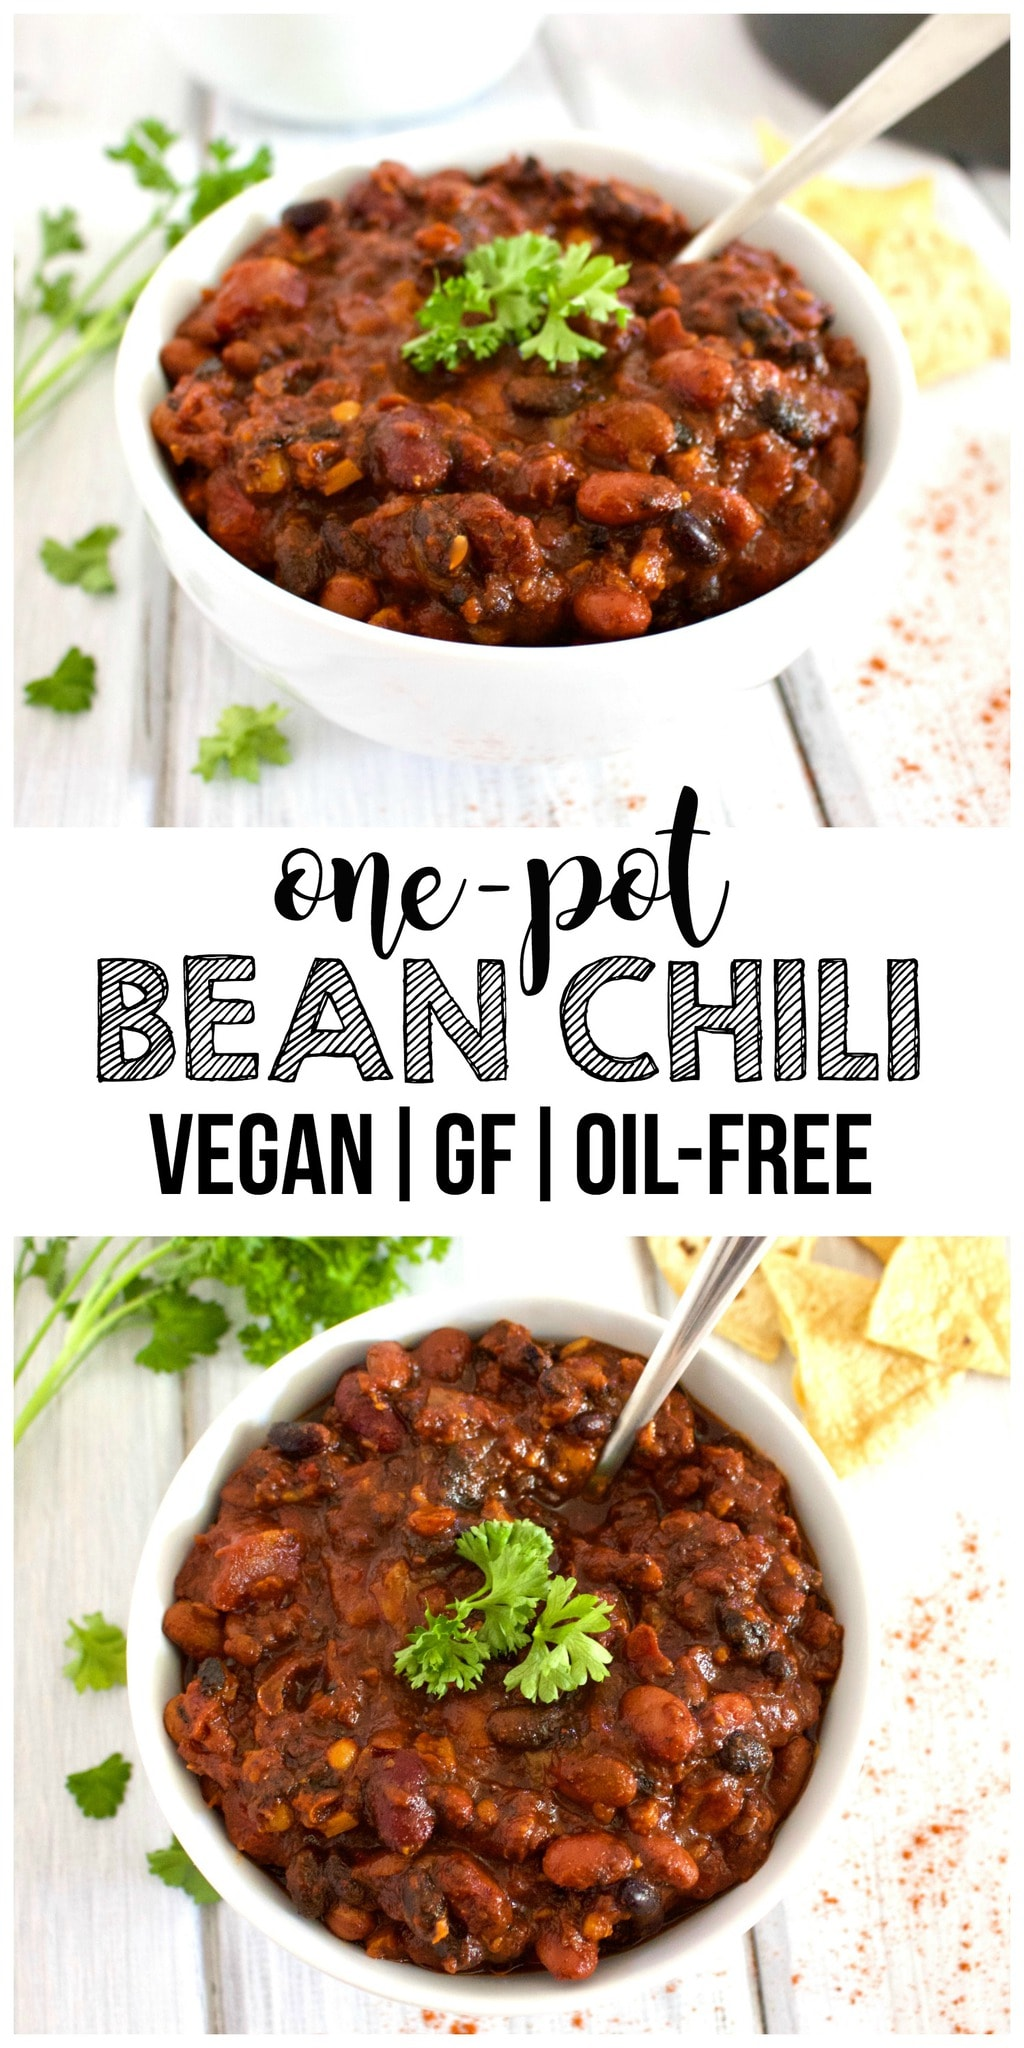 This amazing One-Pot Bean Chili is so delicious! A perfect, easy vegan lunch or dinner. It's also gluten-free & oil-free!